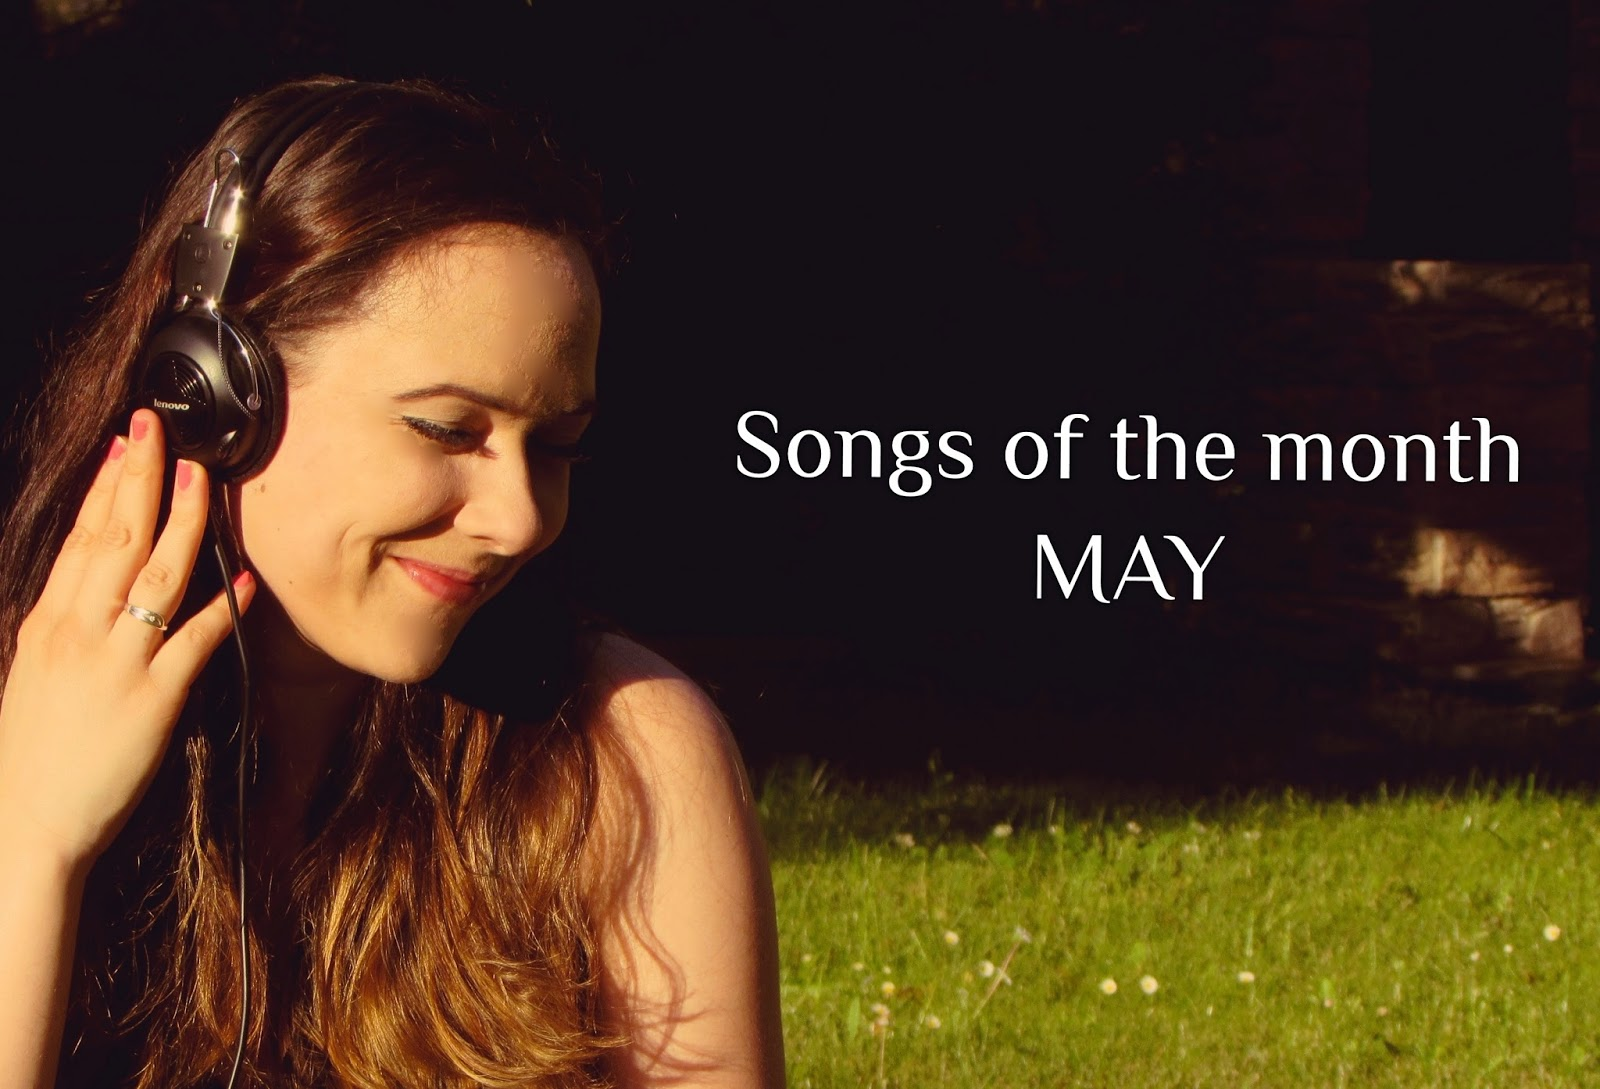 Songs of the month // MAY